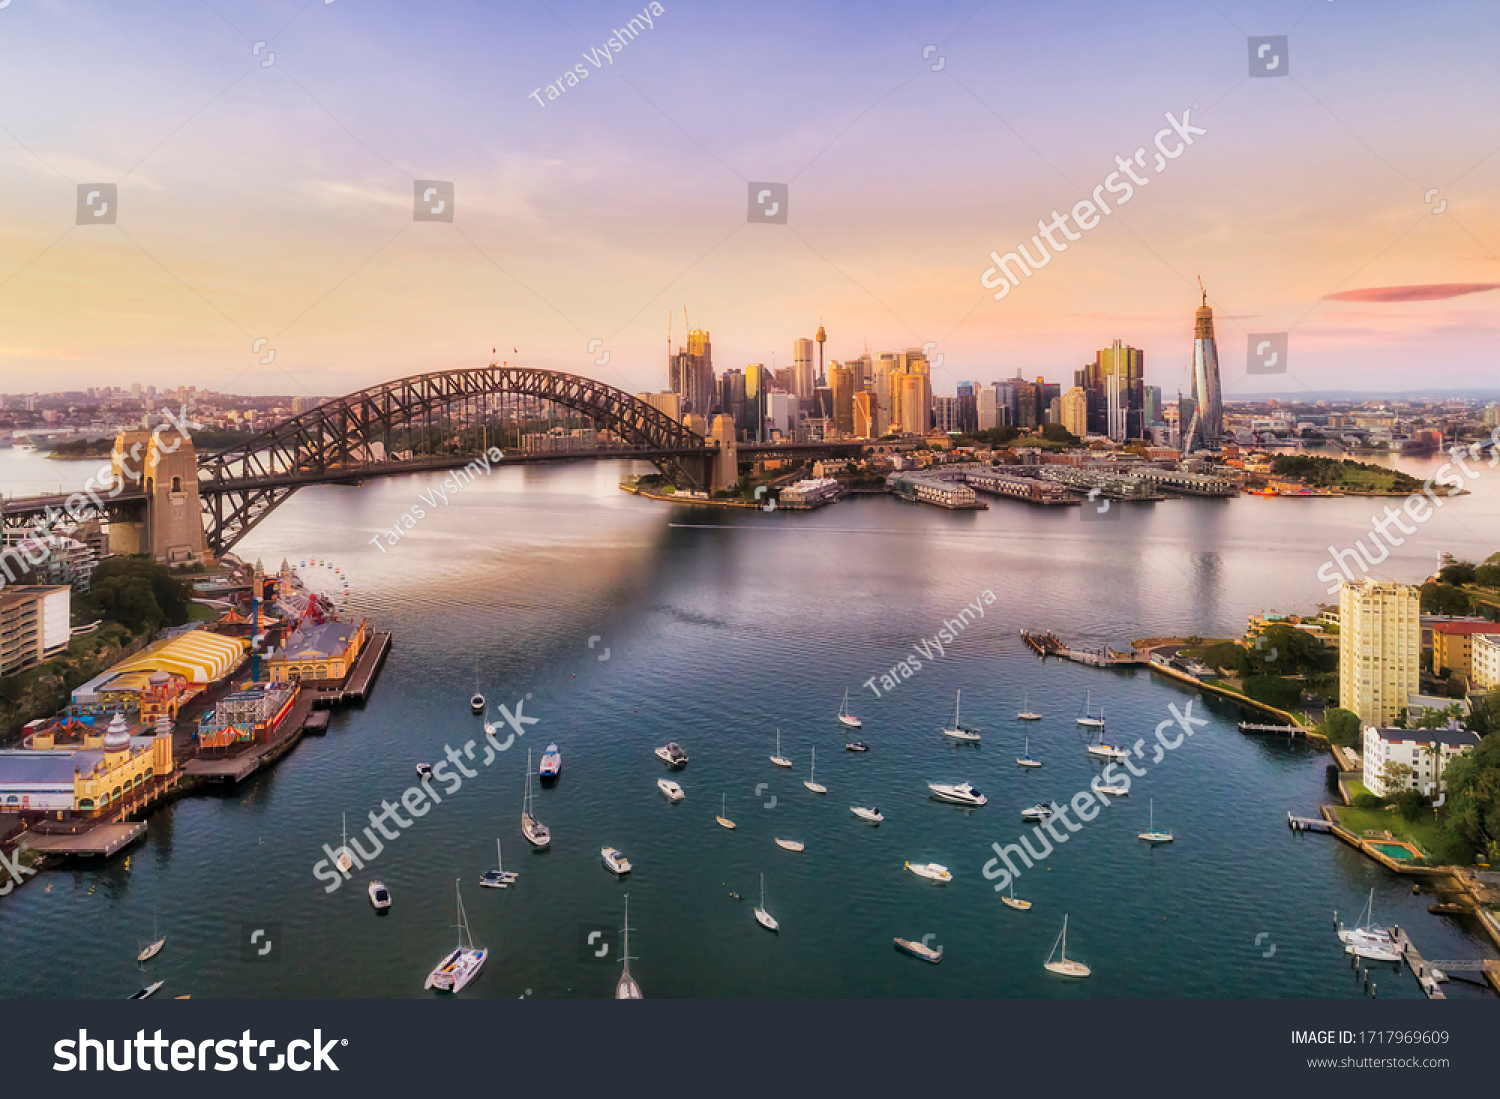 Sunrise in Sydney city - aerial view from Lavender bay to the Sydney harbour bridge and CBD skyline. #1717969609